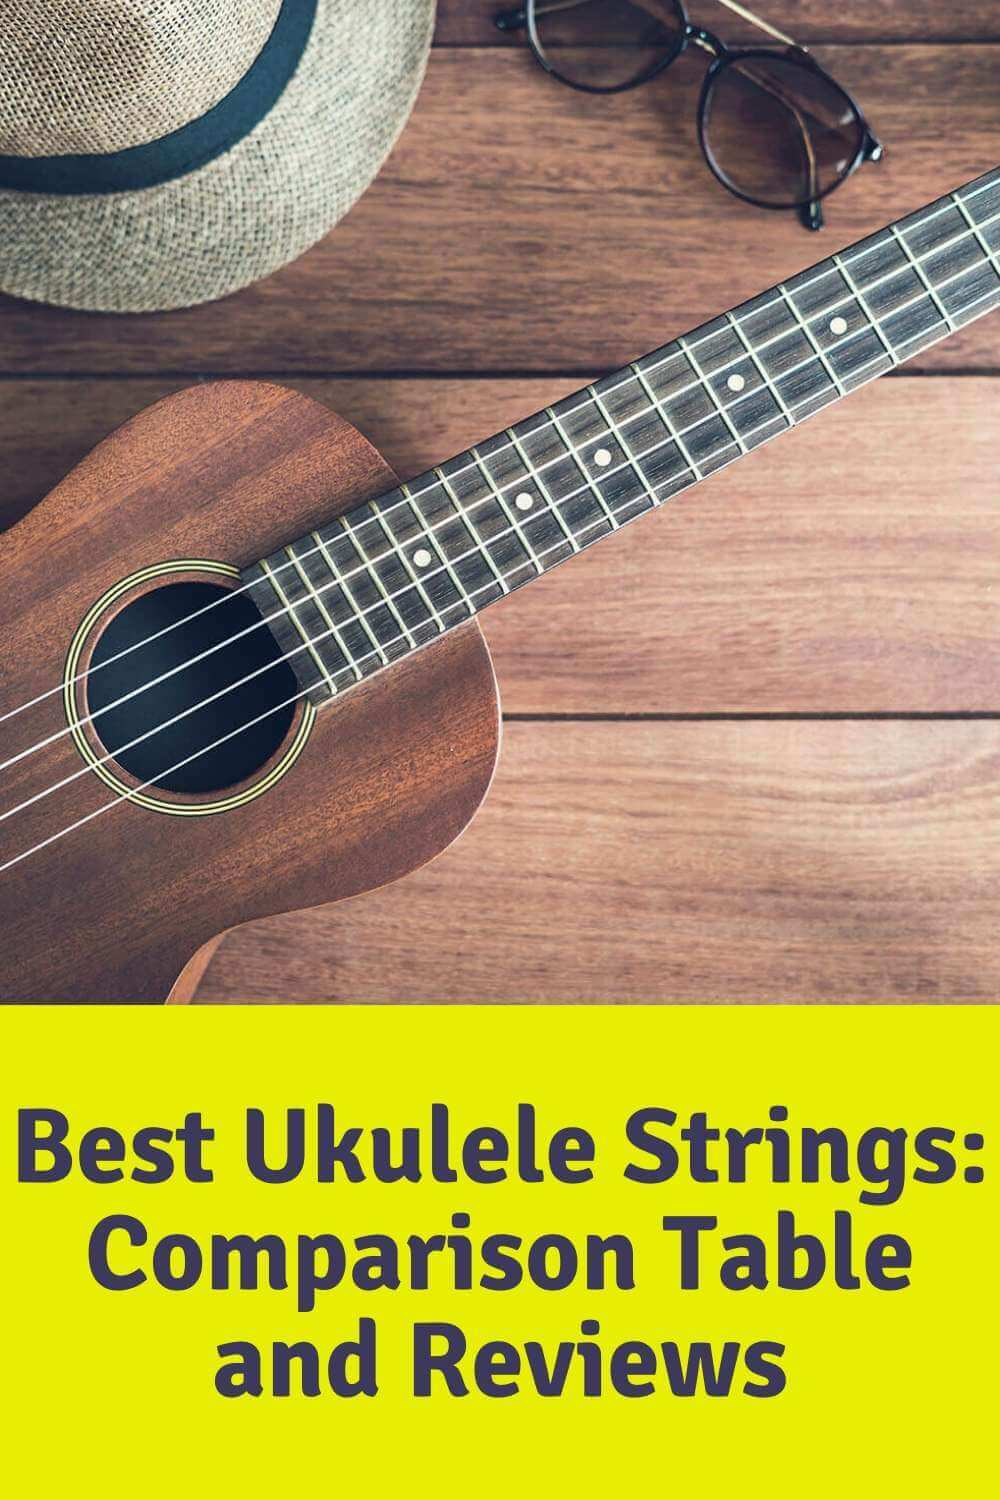 Best Ukulele Strings Comparison Table and Reviews